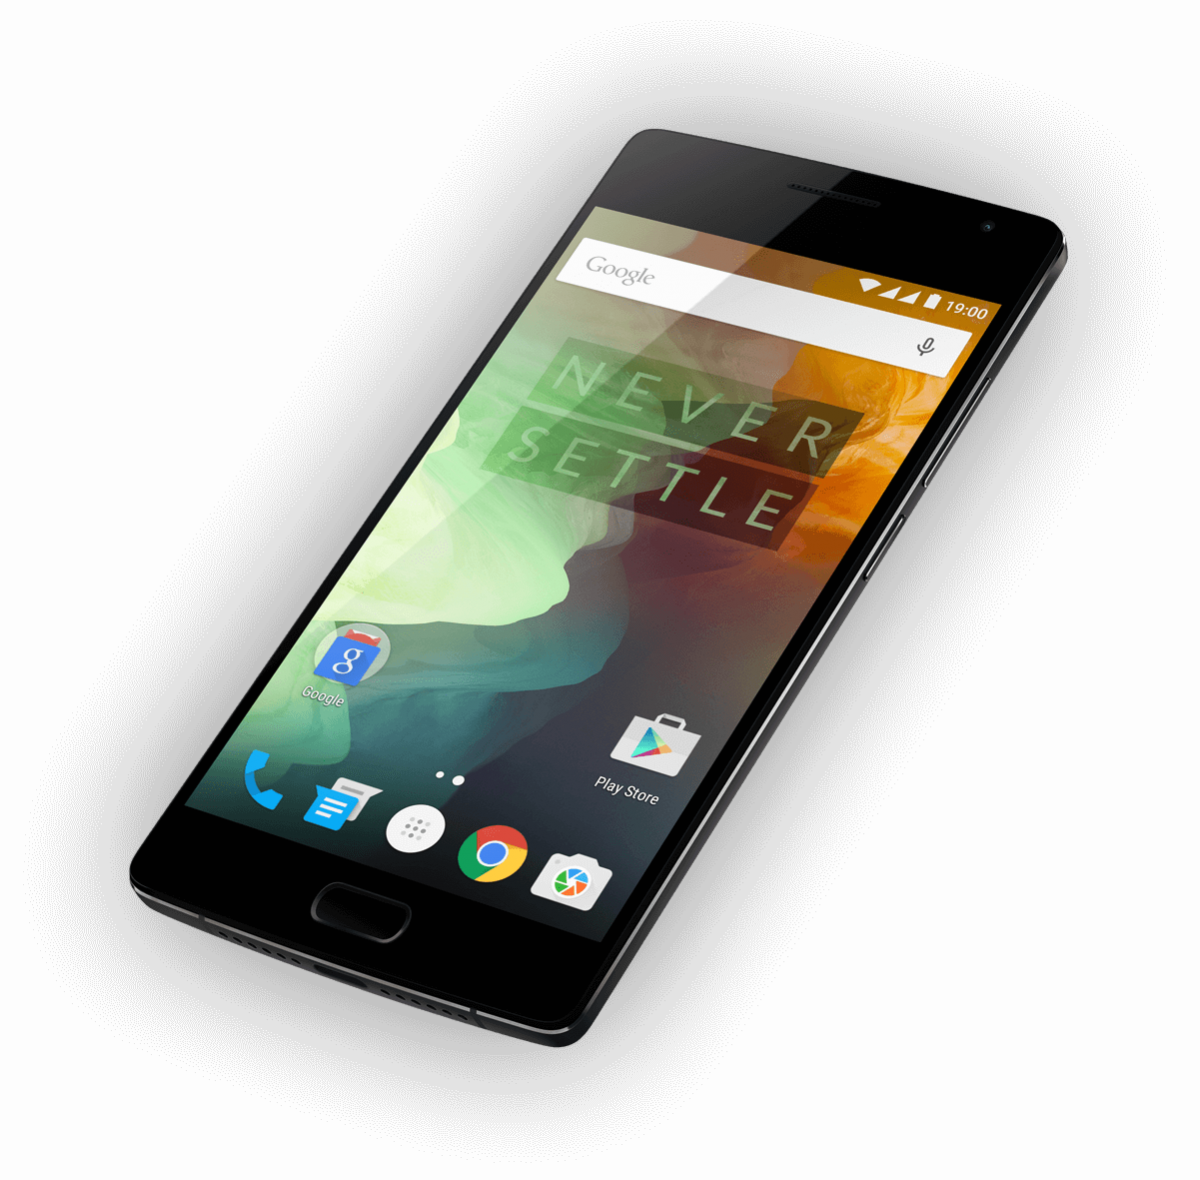 New Smartphone Wallpaper: OnePlus 2 2015: OnePlus Releases 25 New Wallpapers For